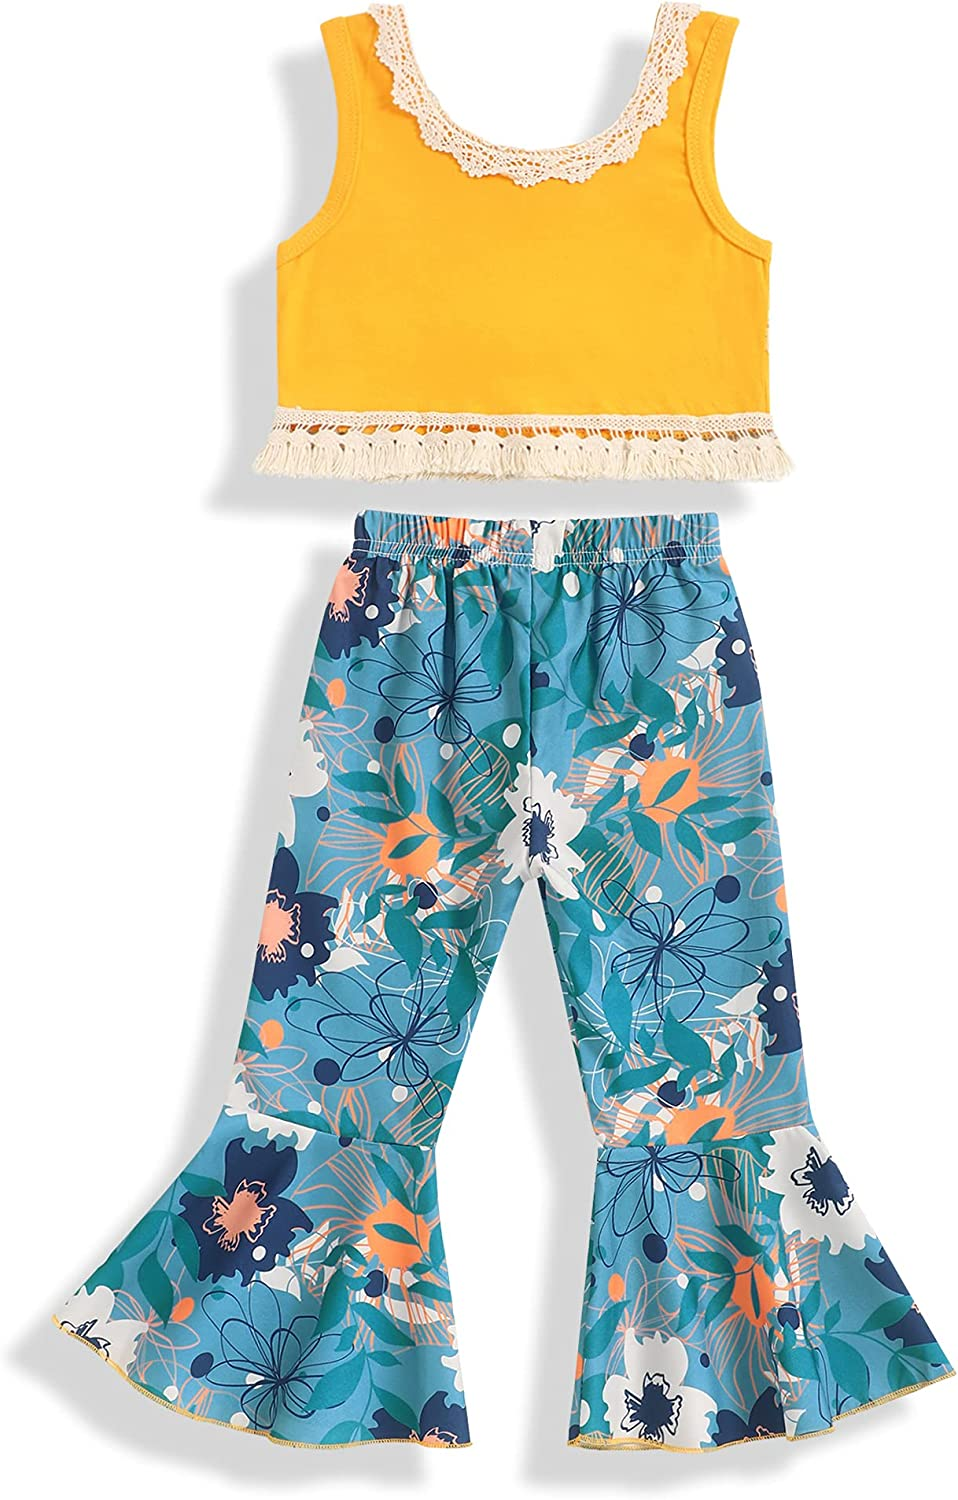 Kids Toddler Baby Girl Clothes Outfit Solid Color Sleeveless Tassel Tops Floral Flared Bell-Bottom Pants Leggings Summer Sets